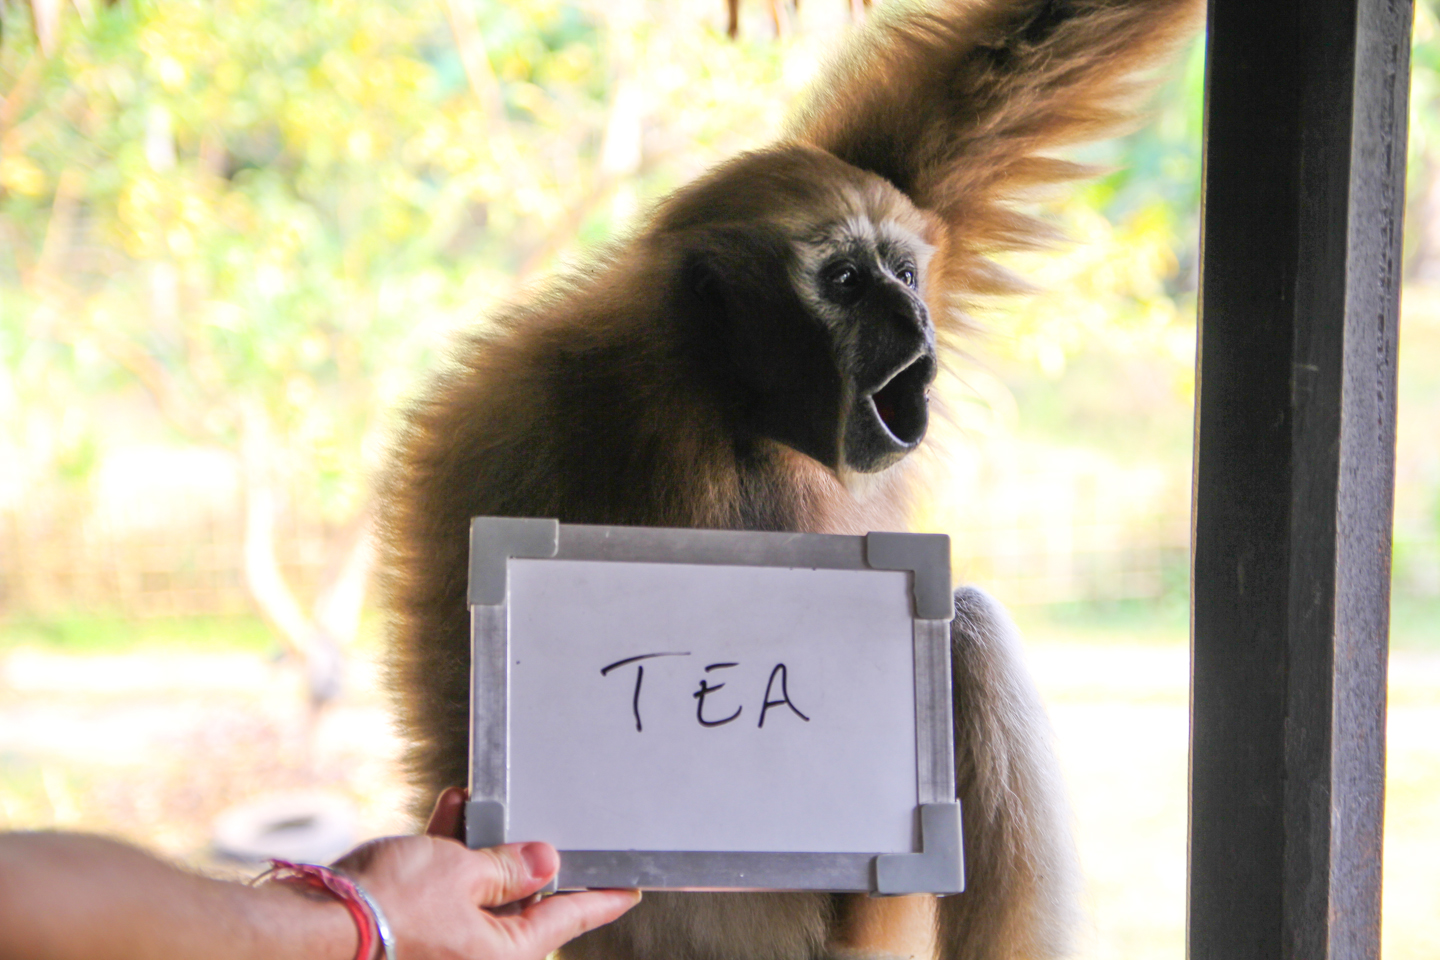 It is no surprise that Kalia, a semi-domesticated gibbon who lives with a Singpho family in Assam, thinks of tea when she hears the word 'chai.' After all, the Singpho tribe had been growing and consuming tea long before the British began cultivating it on large scale plantations in India in the early 1900s.